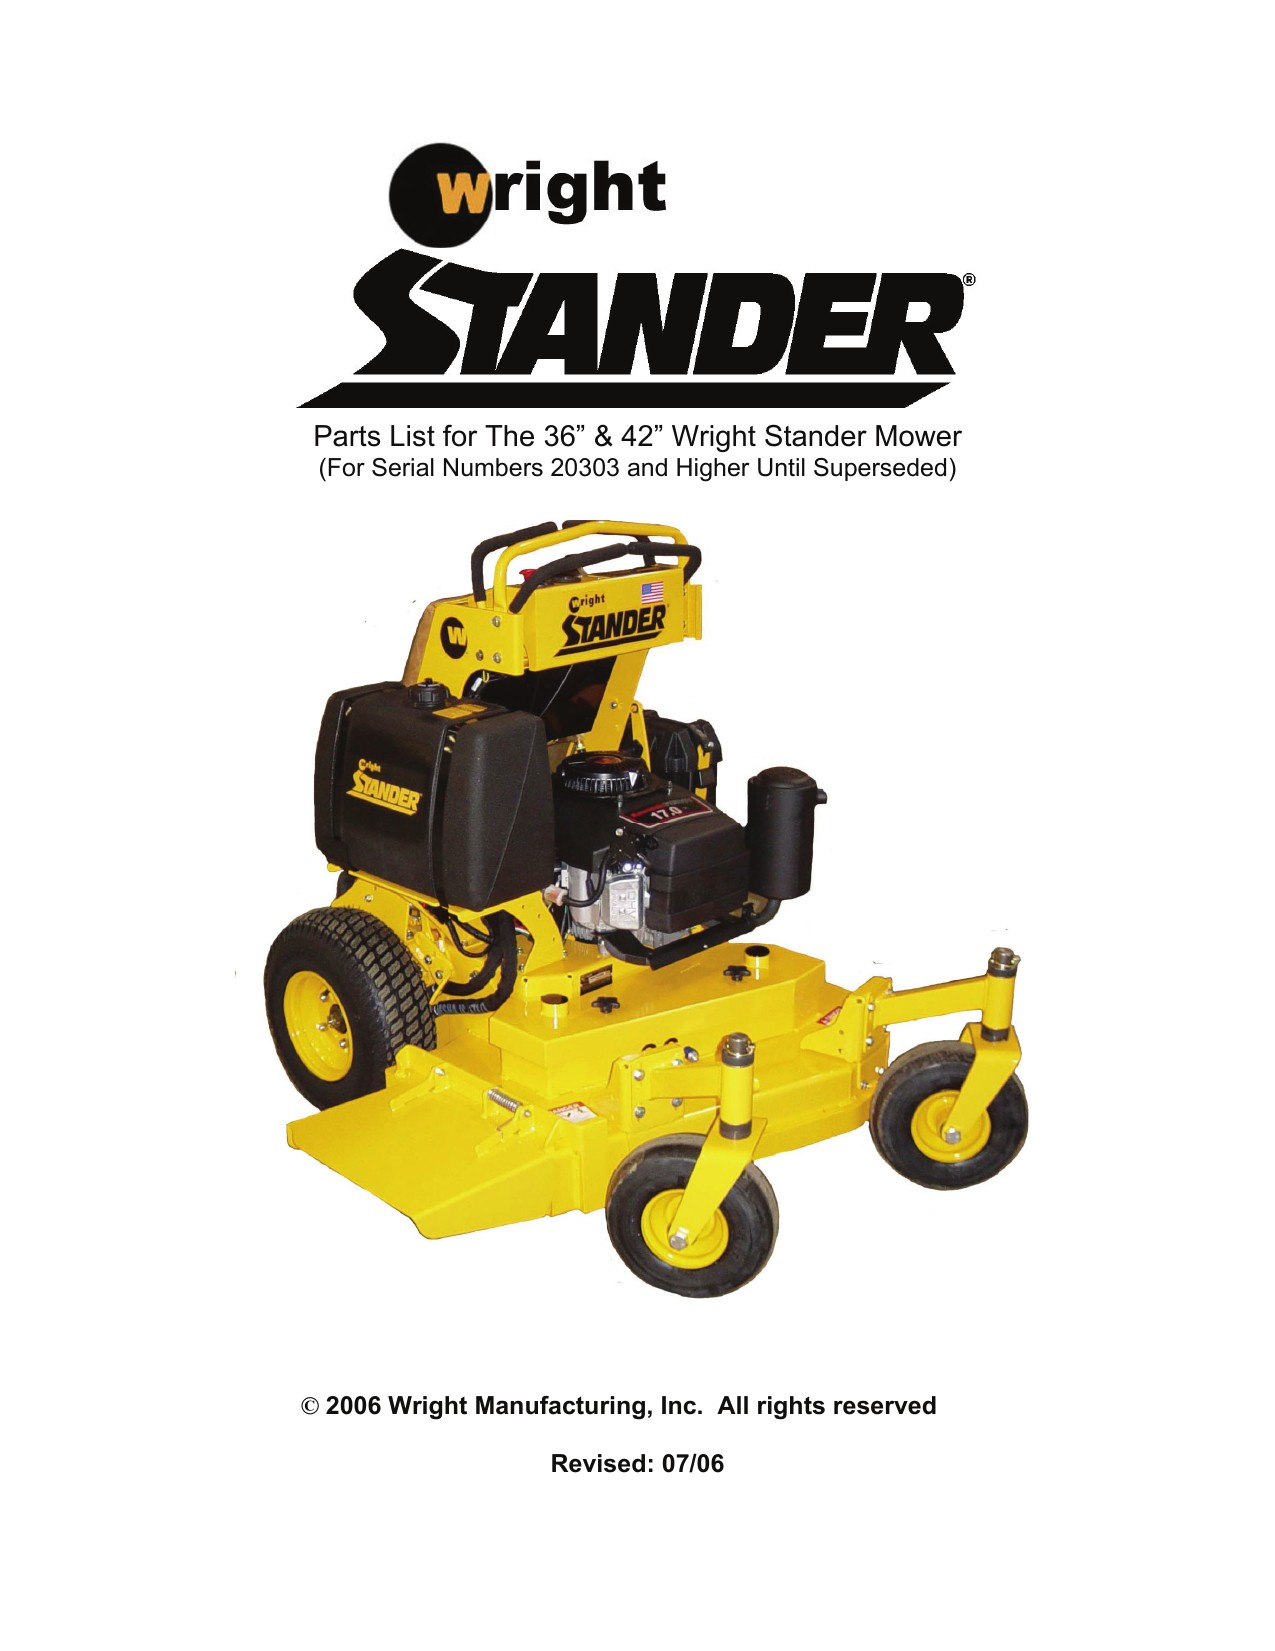 Wright Stander Wiring Diagram Small Stander Ipl Color Of Wright Stander Wiring Diagram